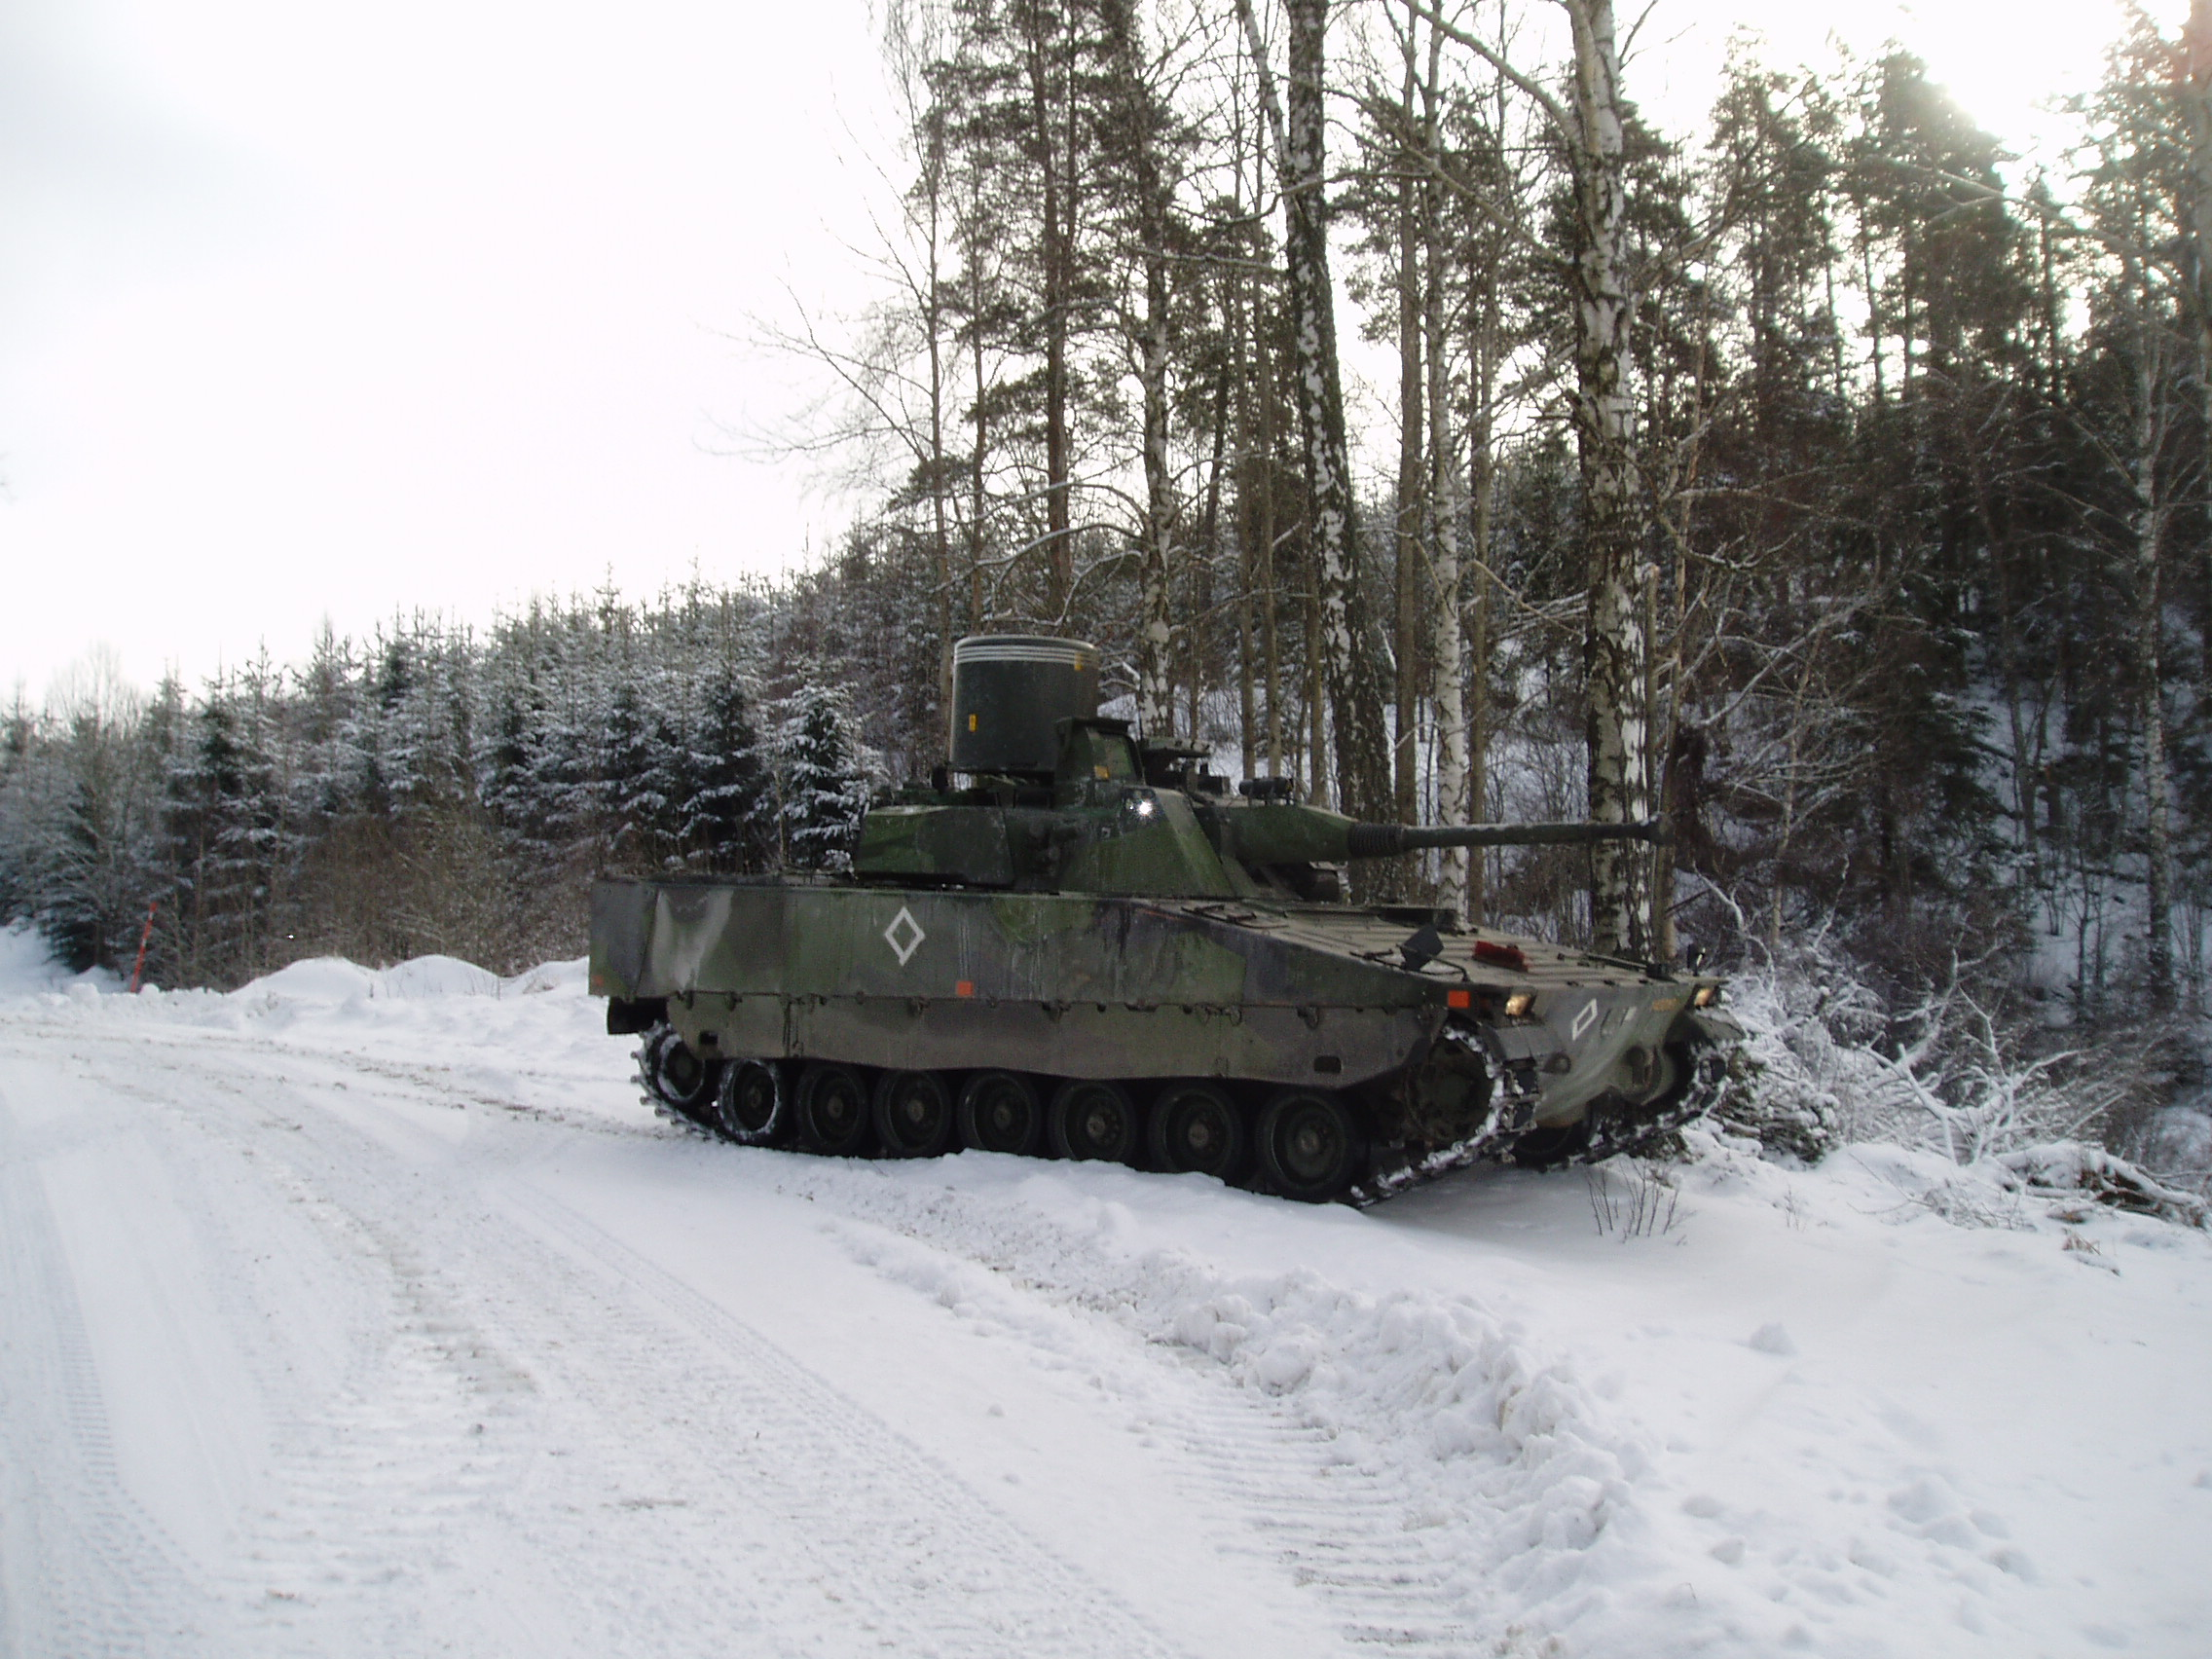 http://upload.wikimedia.org/wikipedia/commons/3/34/Swedish_CV9040_AAV_-_Anti-Air_Vehicle.JPG